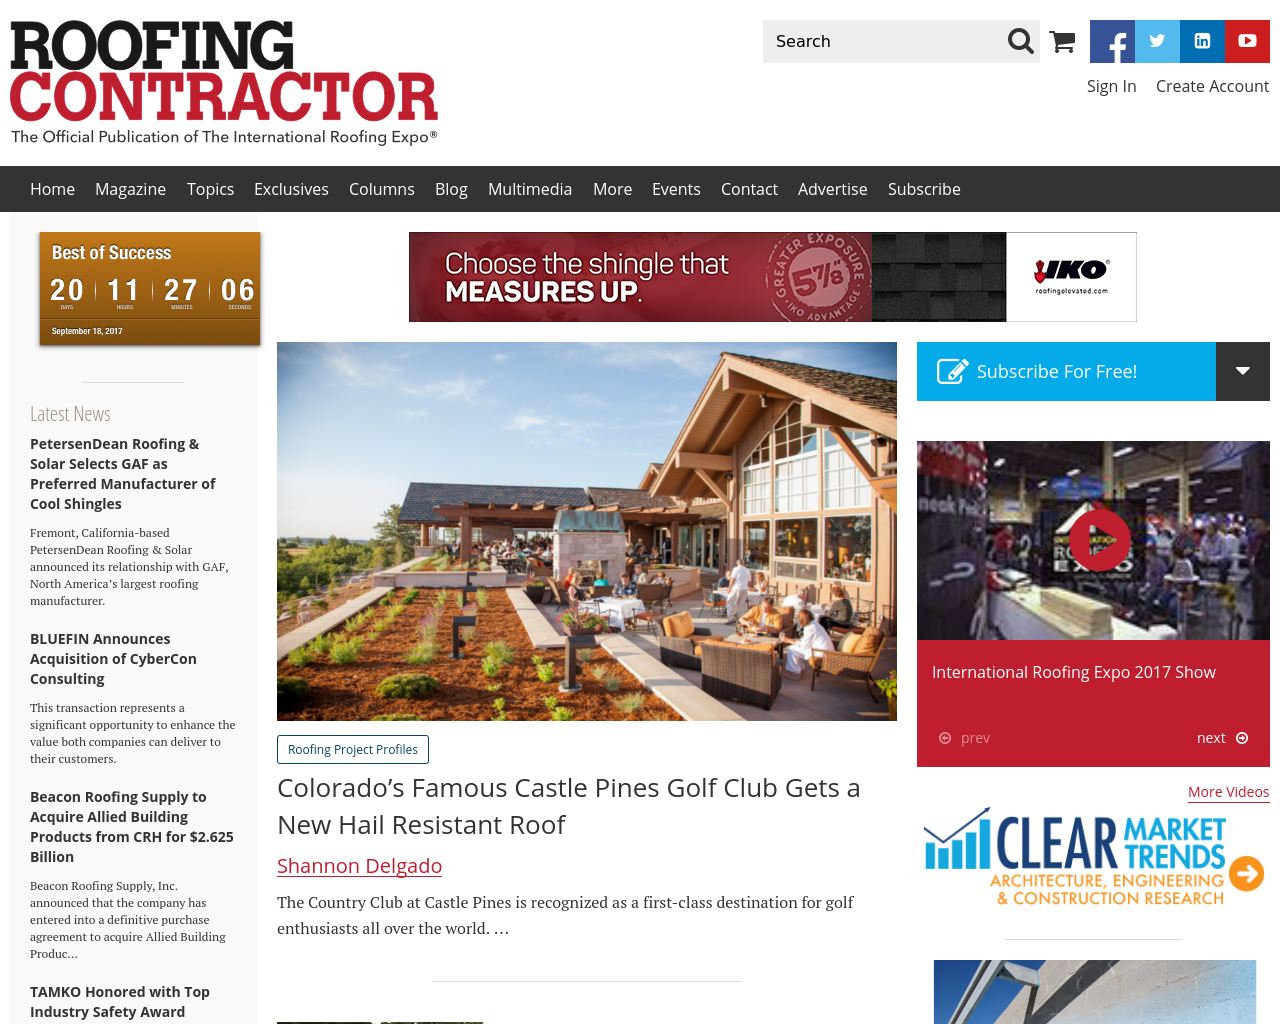 Roofing-Contractor-Magazine-Advertising-Reviews-Pricing